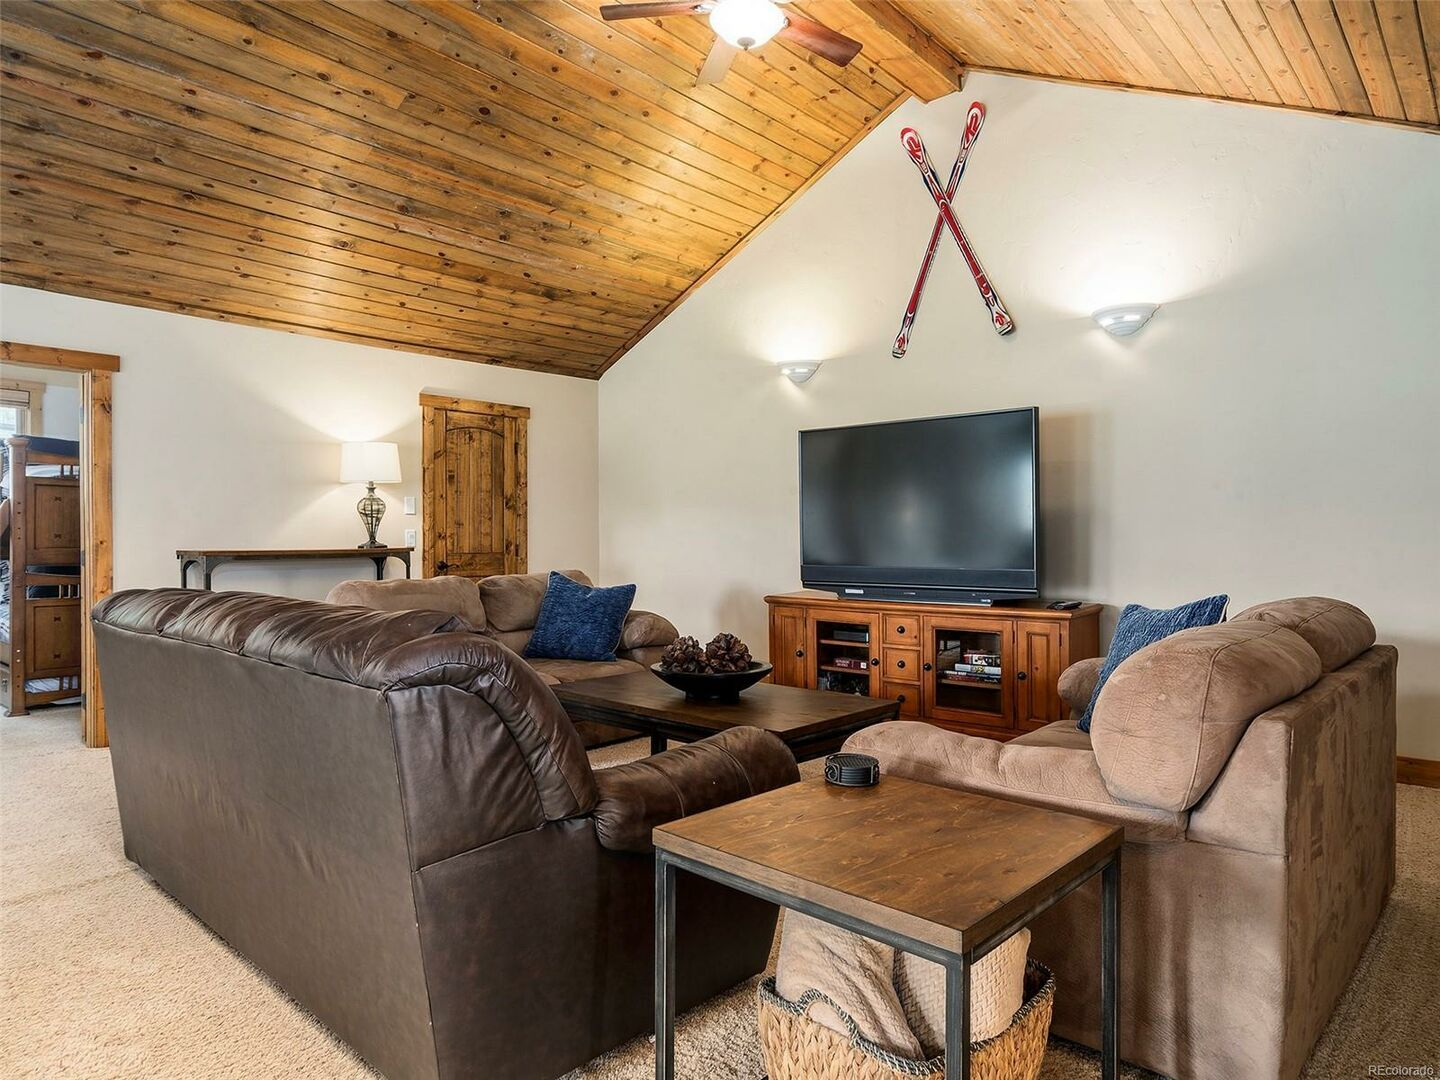 Living Area with TV, Sofas, Side Table, and Buffet Console.